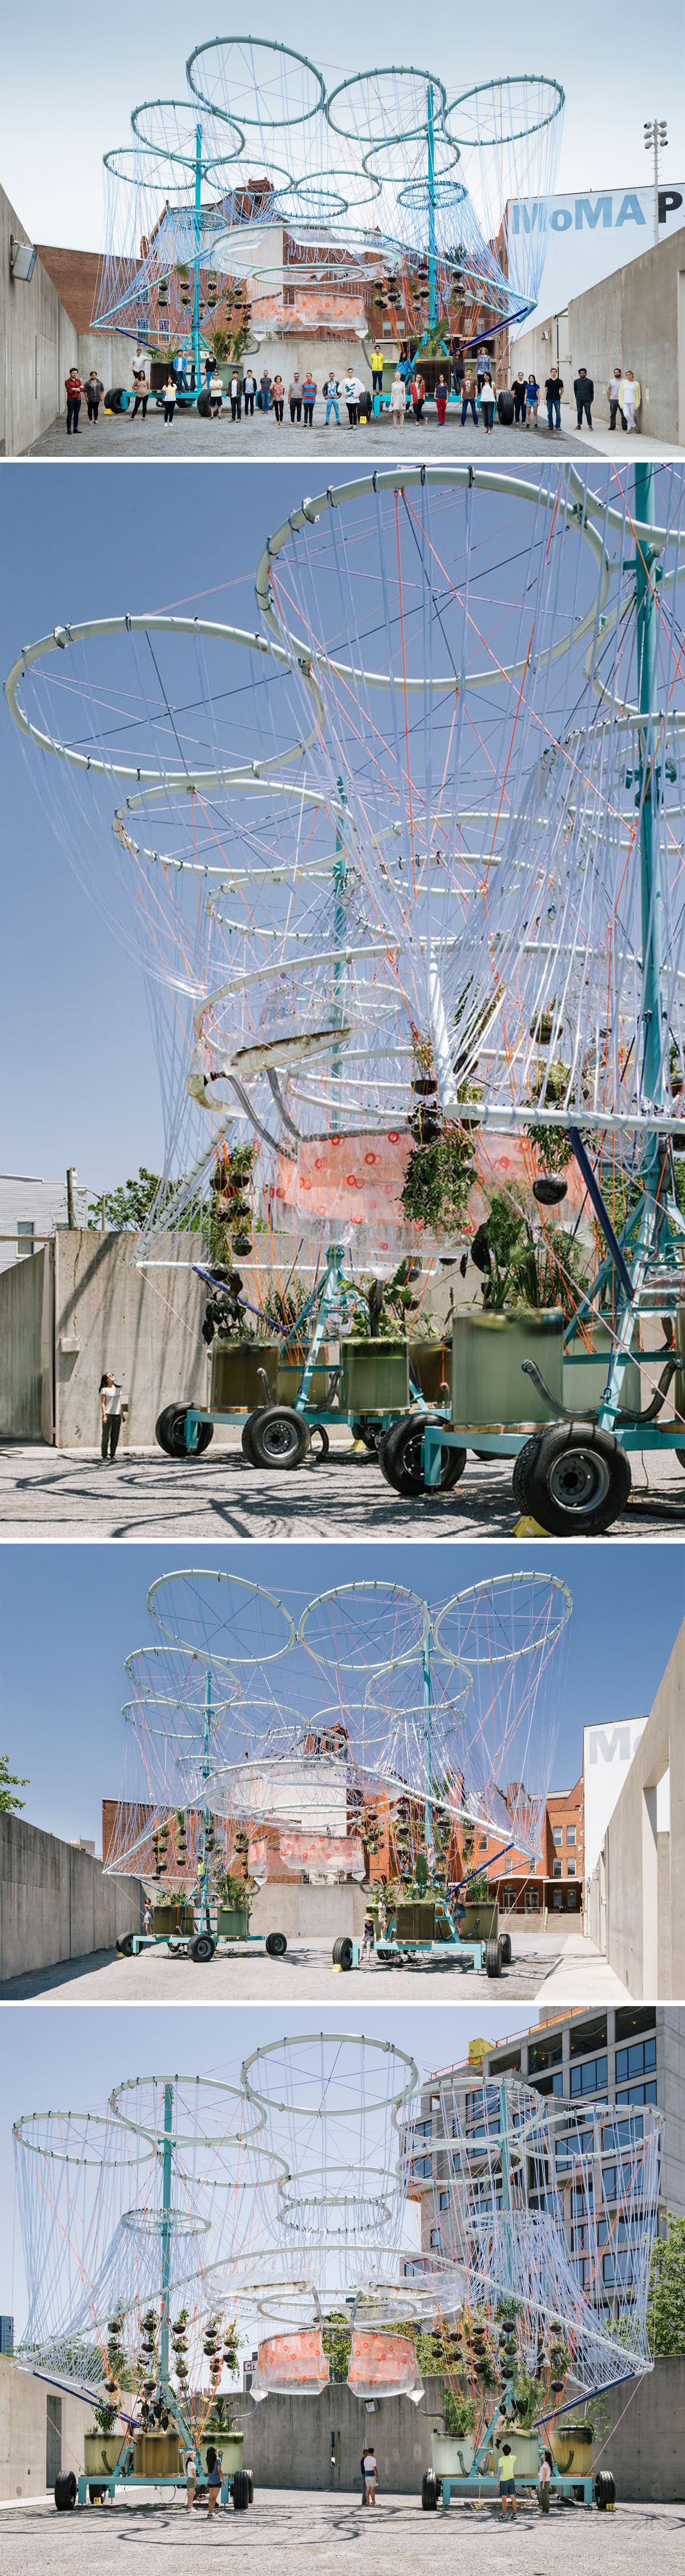 MoMA PS1 YAP COSMO by Andres Jaque fice for Political Innovation Urban Ideas Pinterest